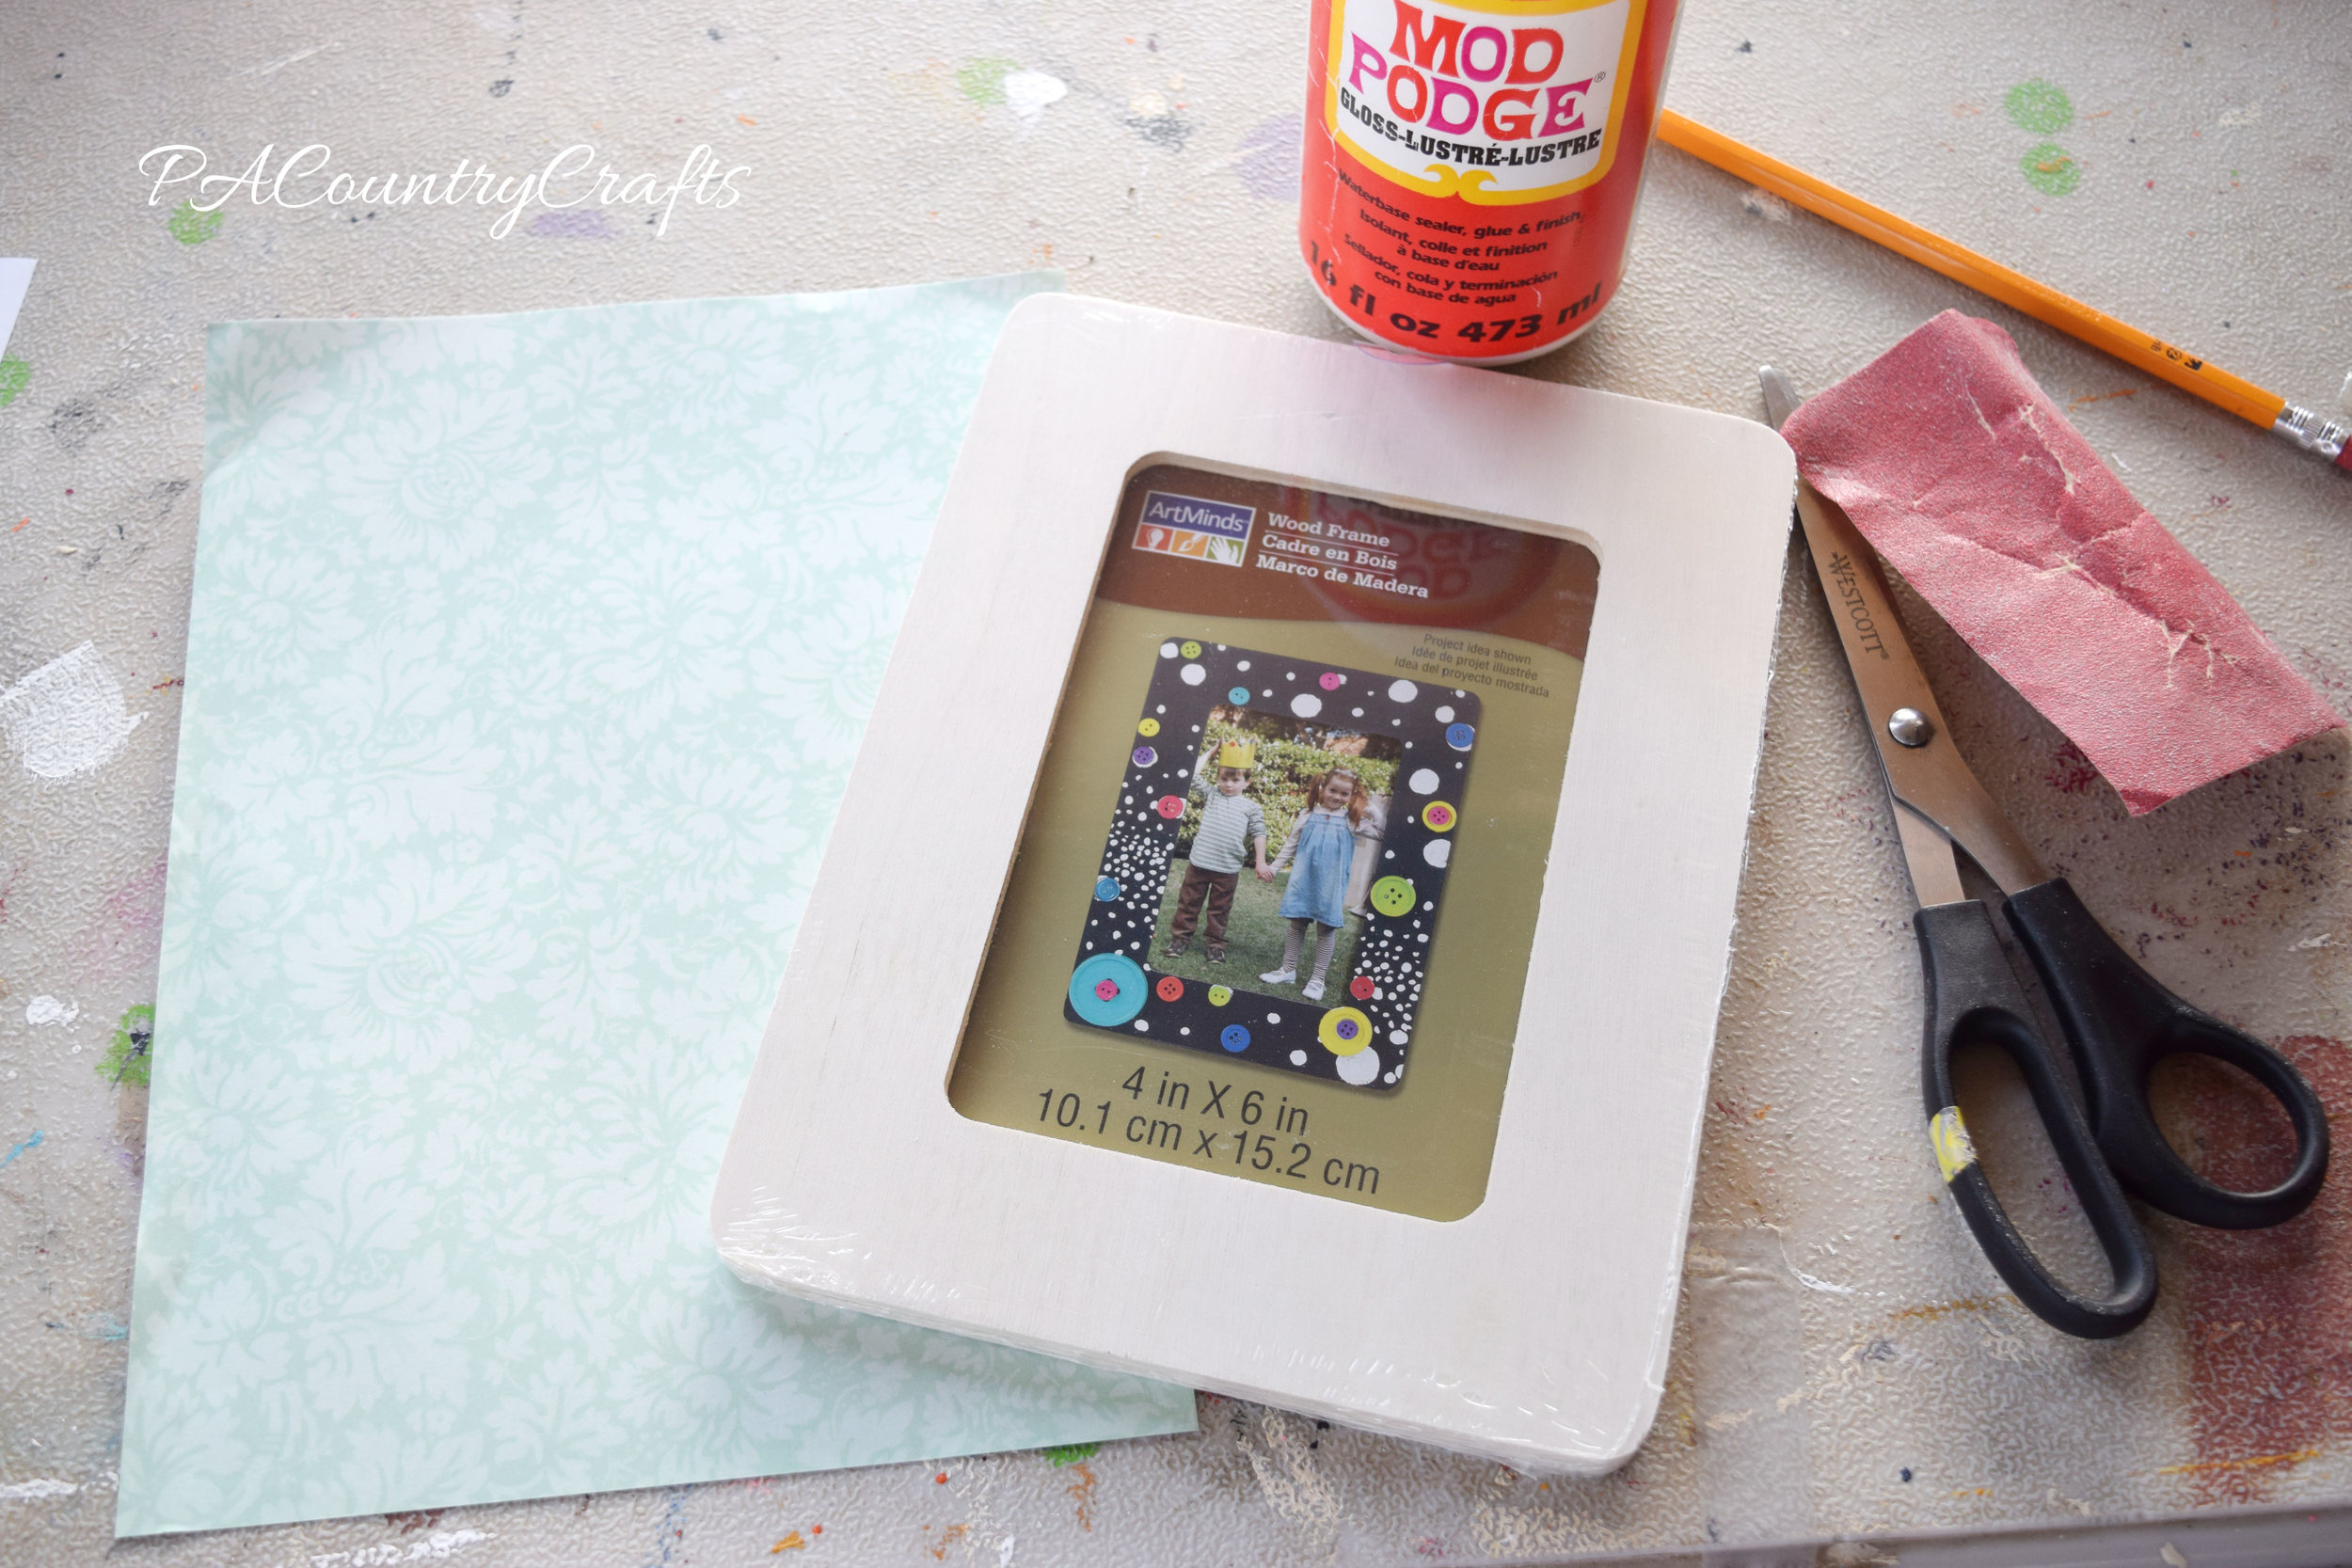 Easy DIY frame craft with scrapbook paper, cheap wood frames, and mod podge.